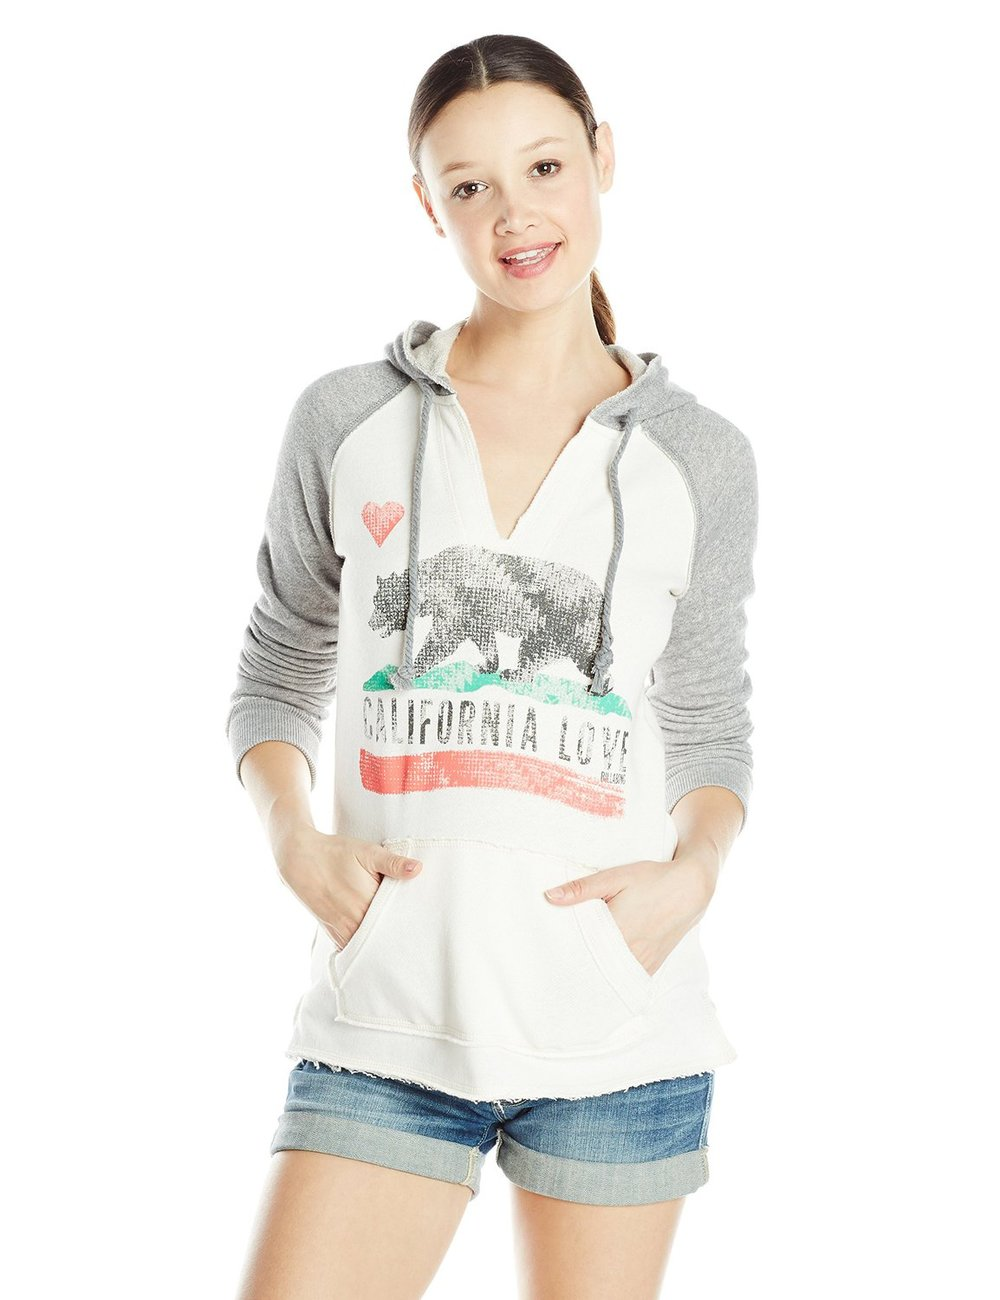 Gray and cream hoodie by Billabong available on Amazon for $30-50